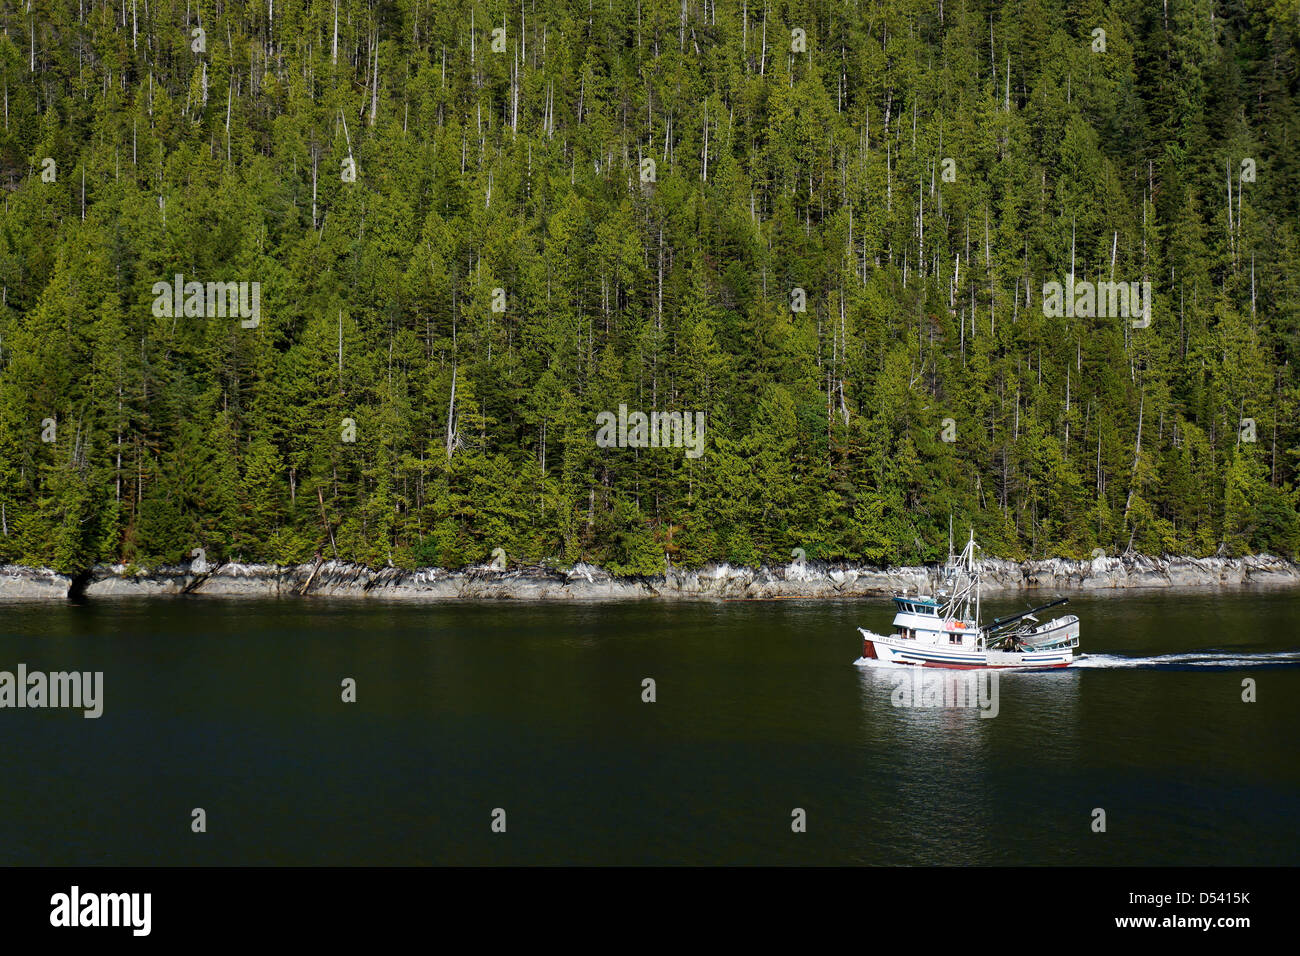 Commercial fishing vessel Iver P Nore in Tolmie Channel, Inside Passage, British Columbia, Canada - Stock Image